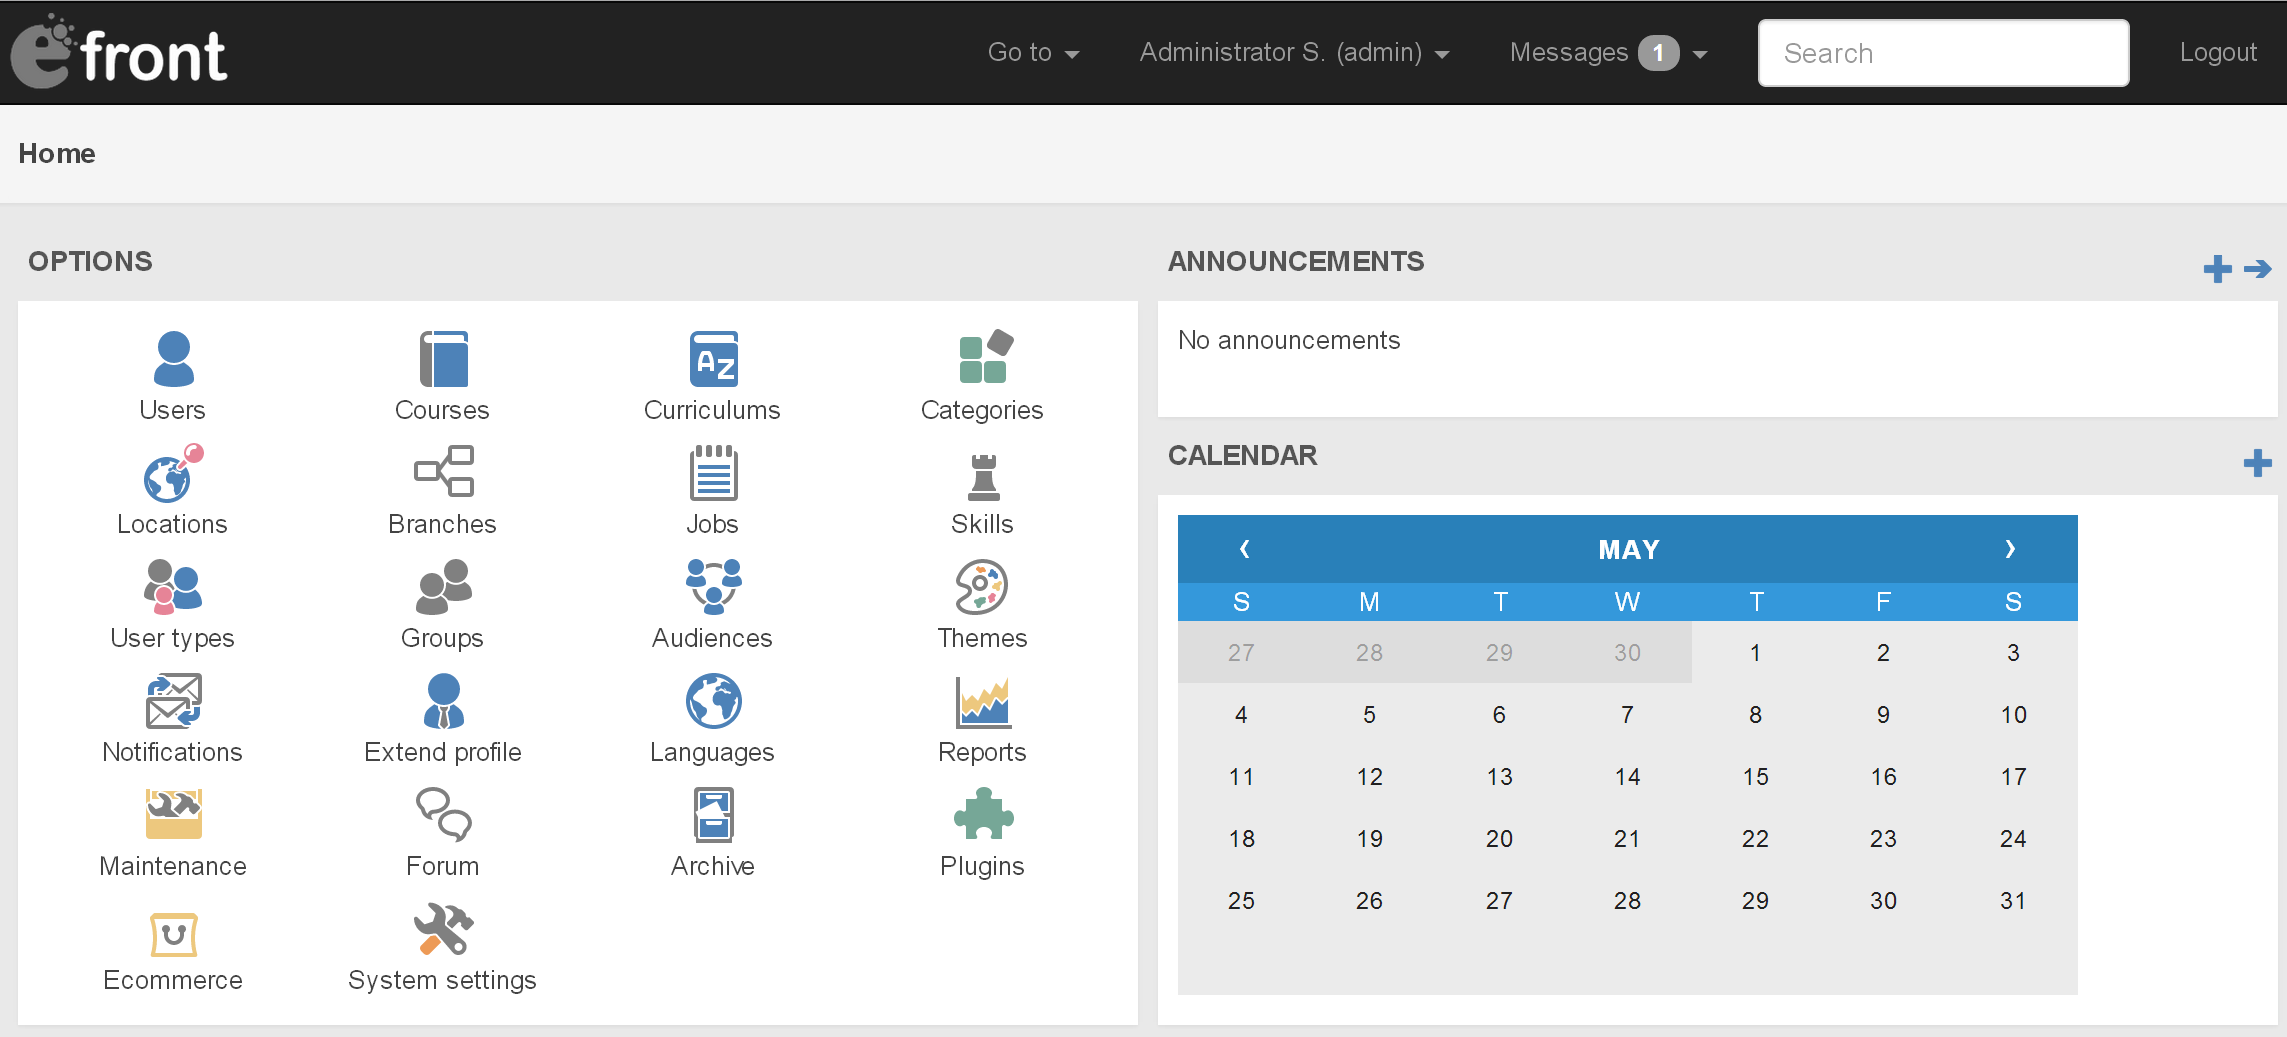 eFrontPro Admin Dashboard in full size